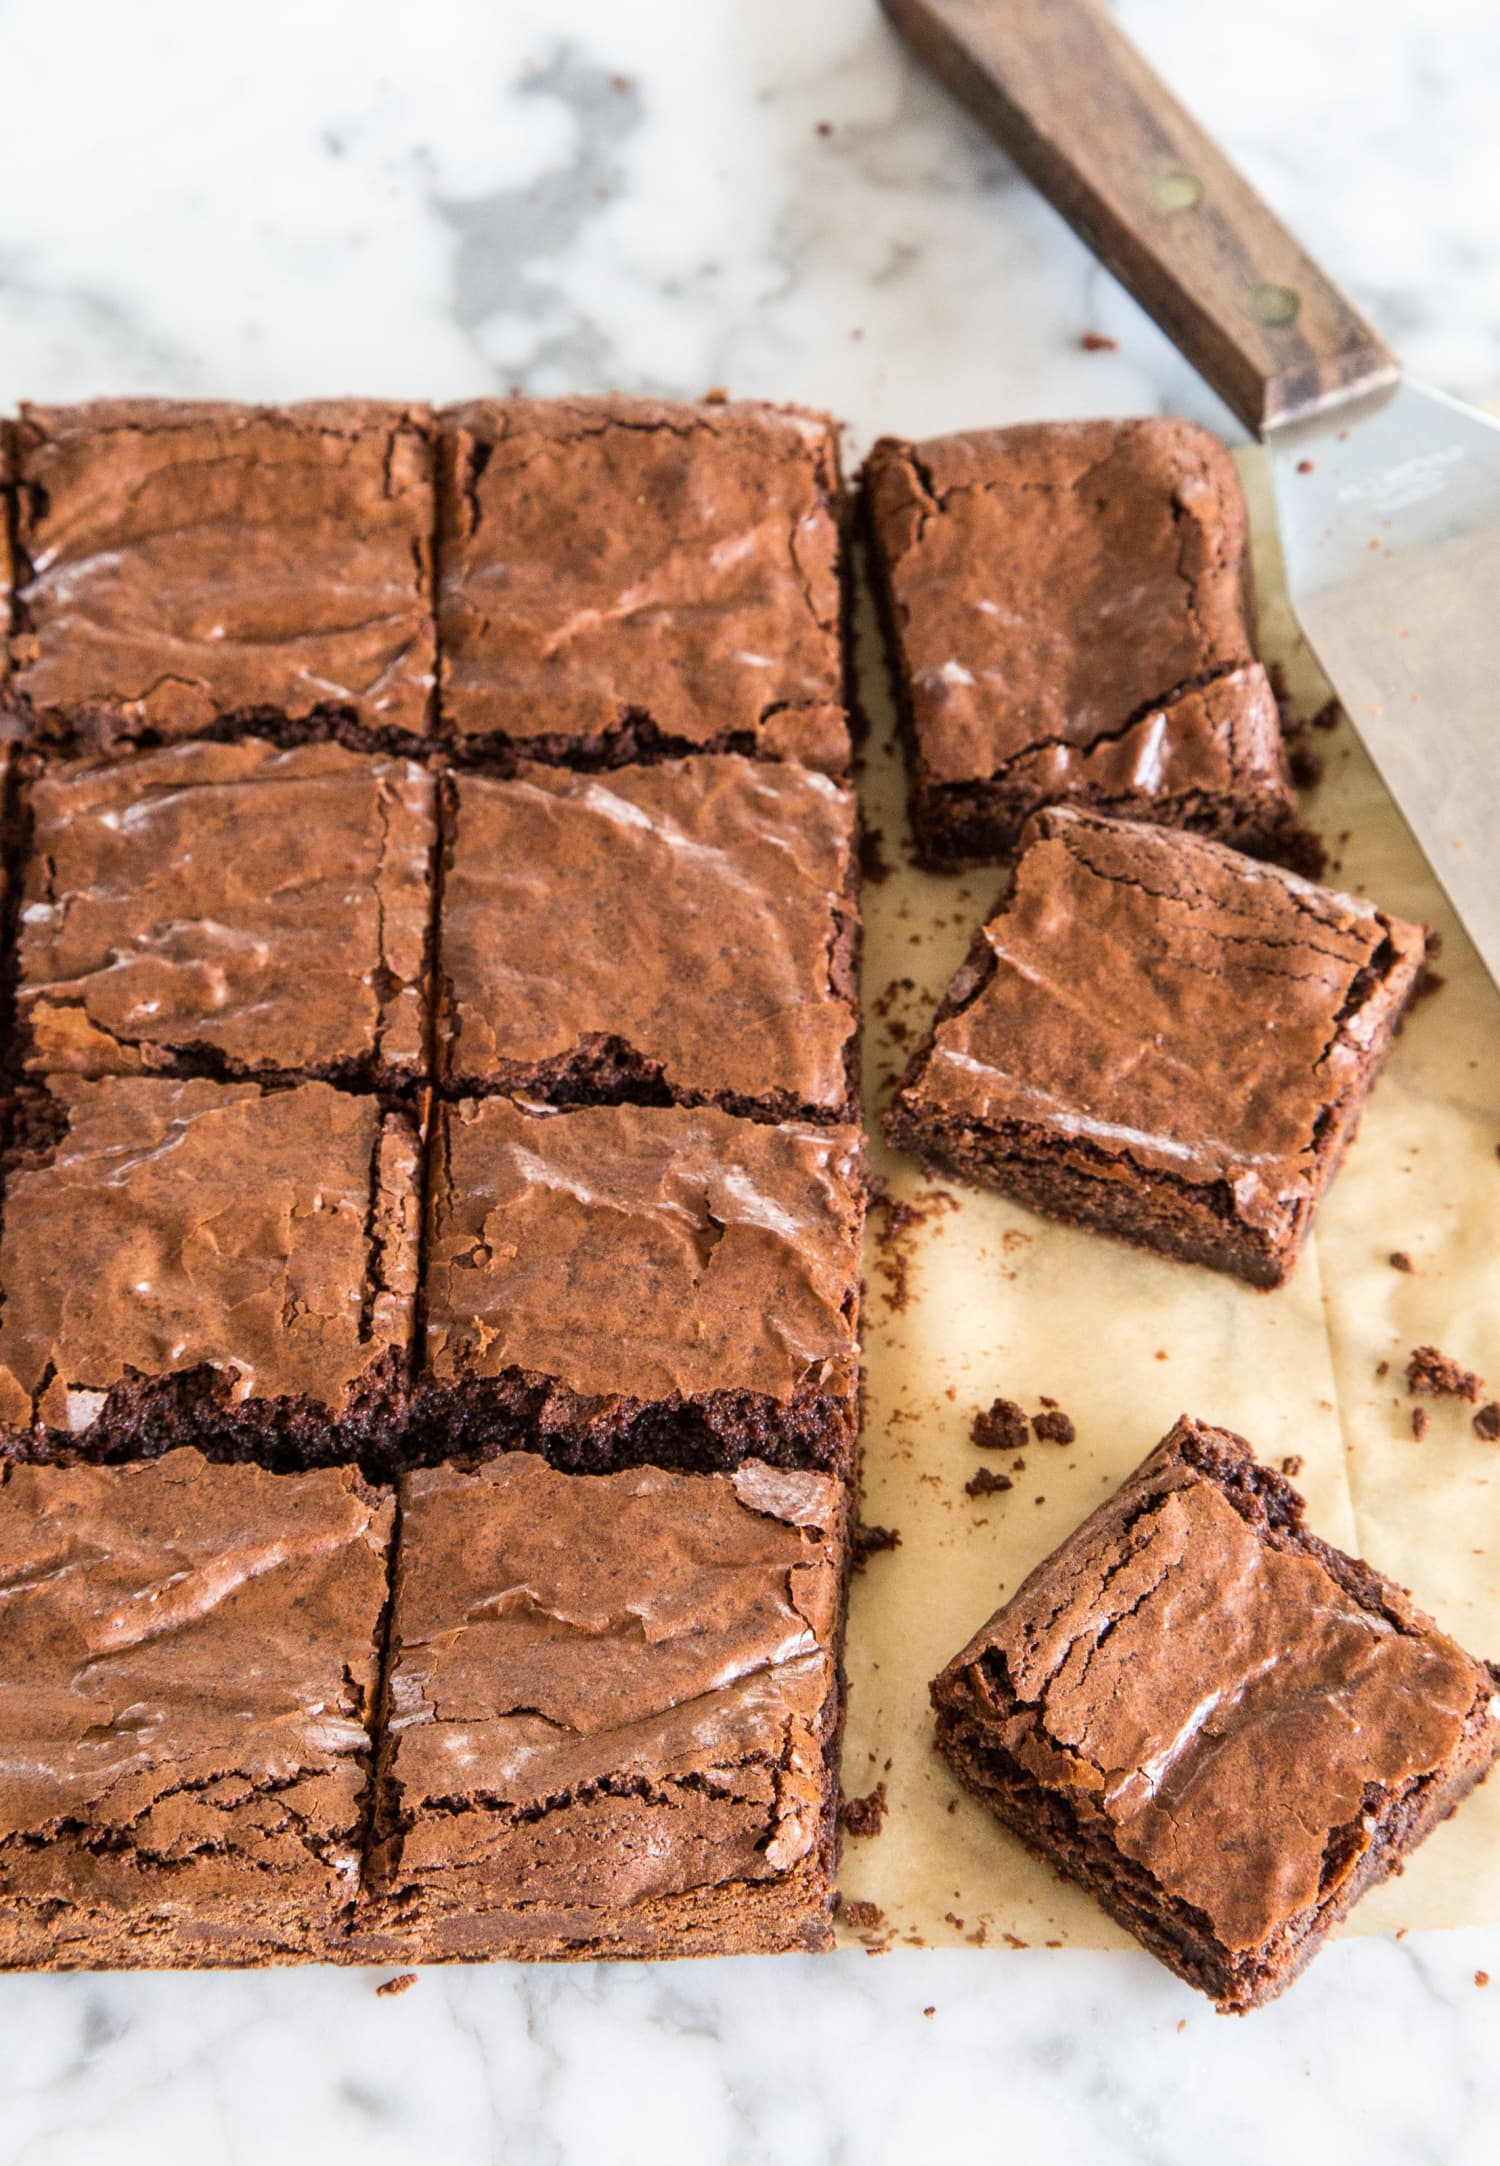 5 Tips for Even Better Brownies